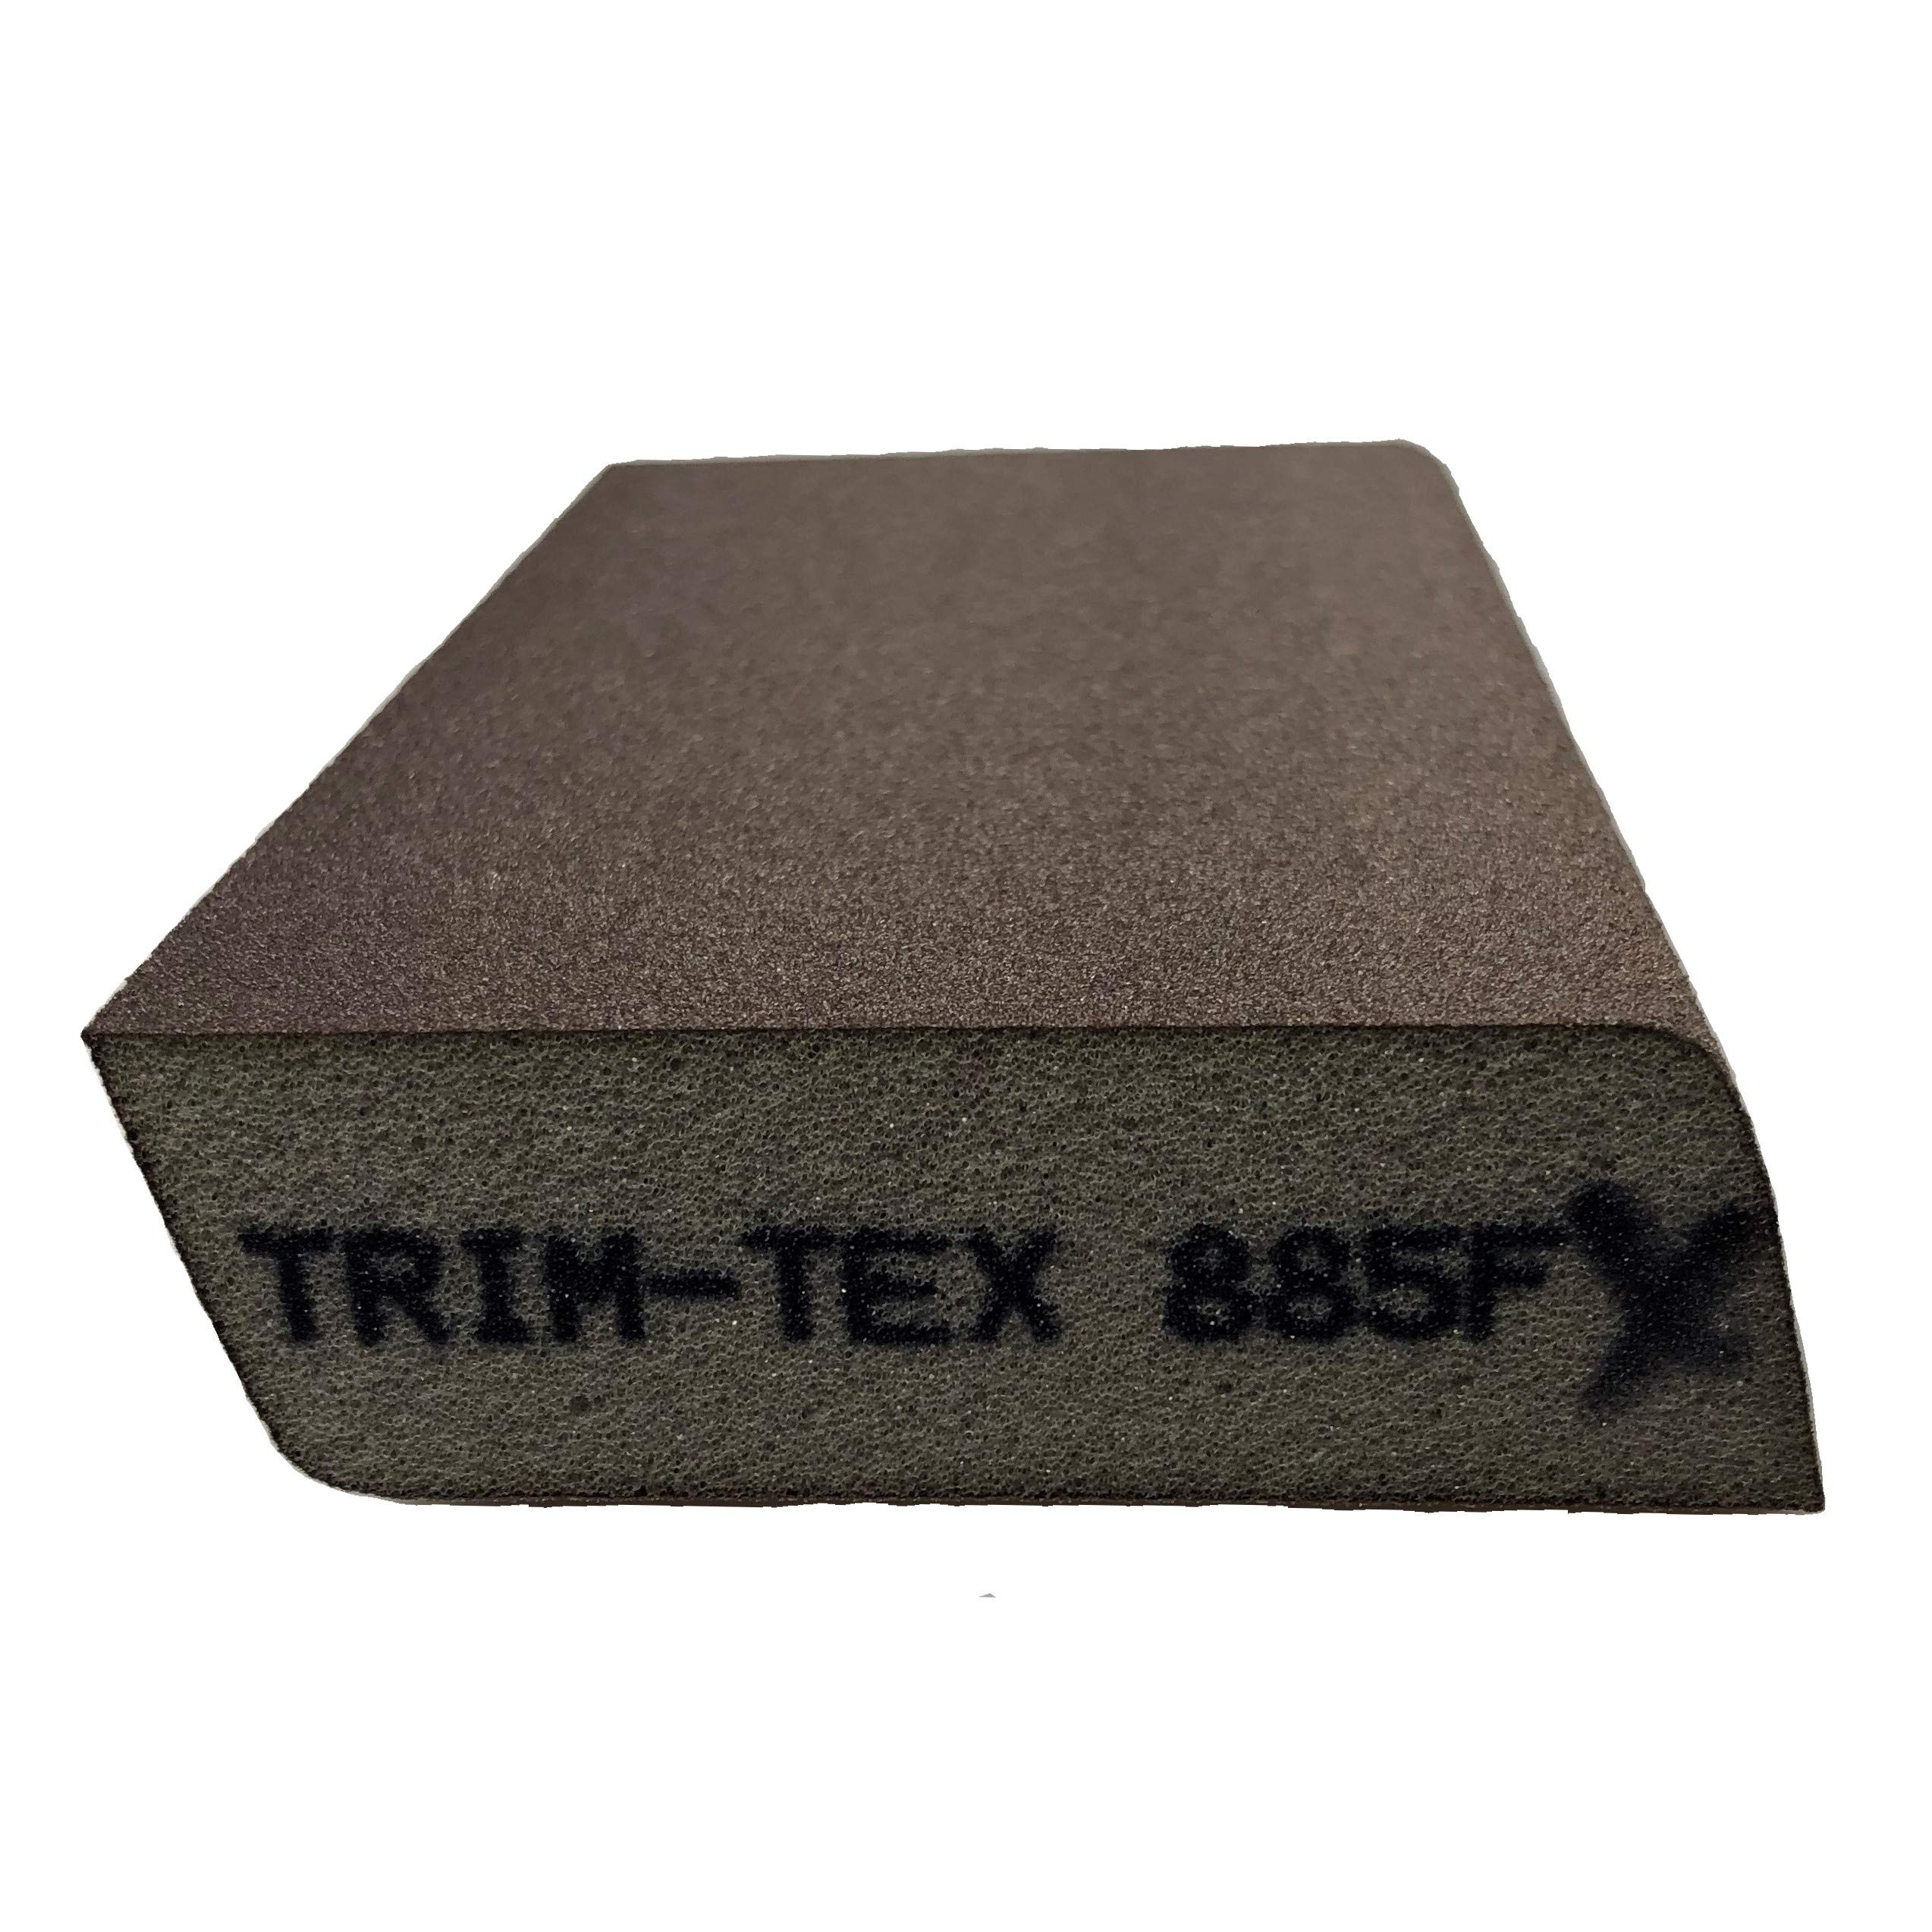 Dual Angle Sanding Block Extra Fine Grit (Box of 24) by Trim-Tex